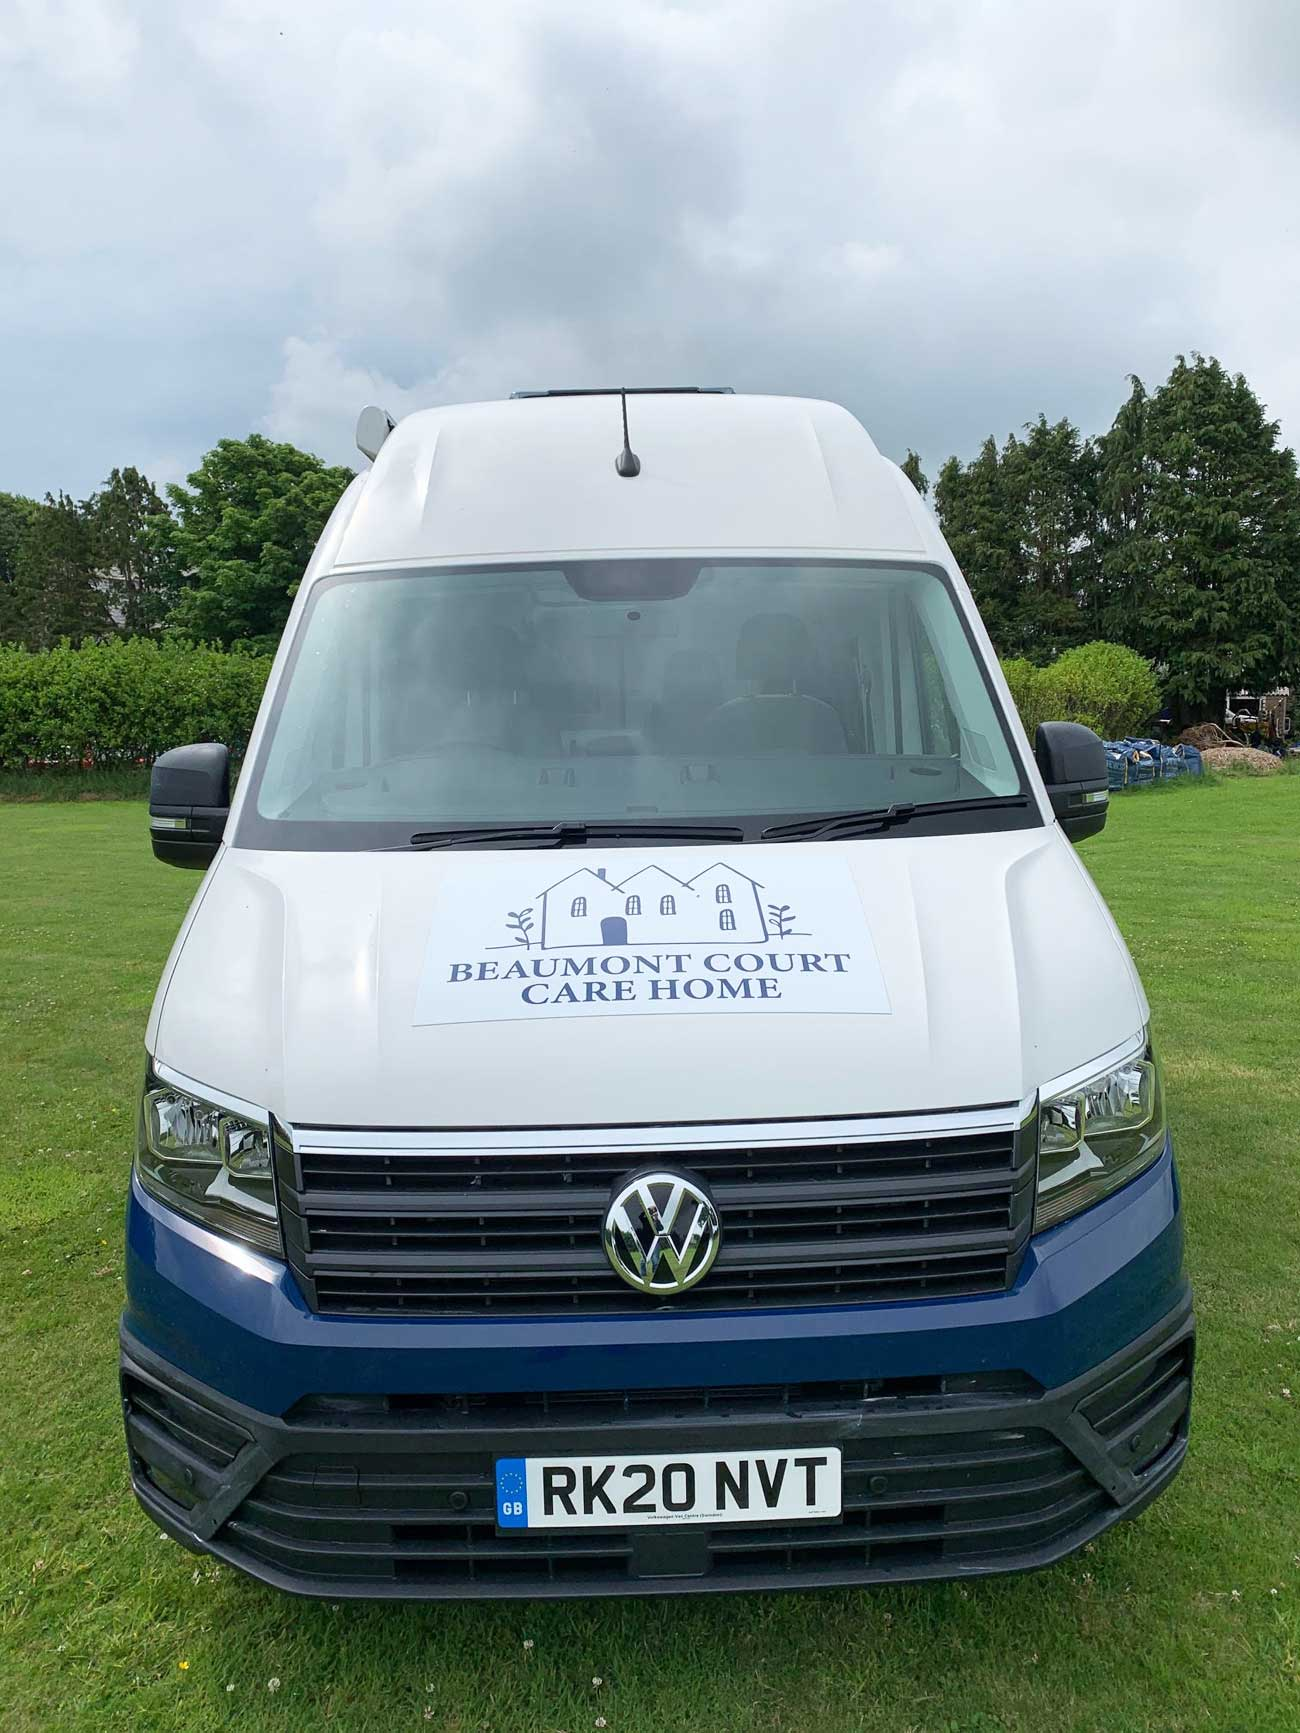 Campervan for Dementia Care